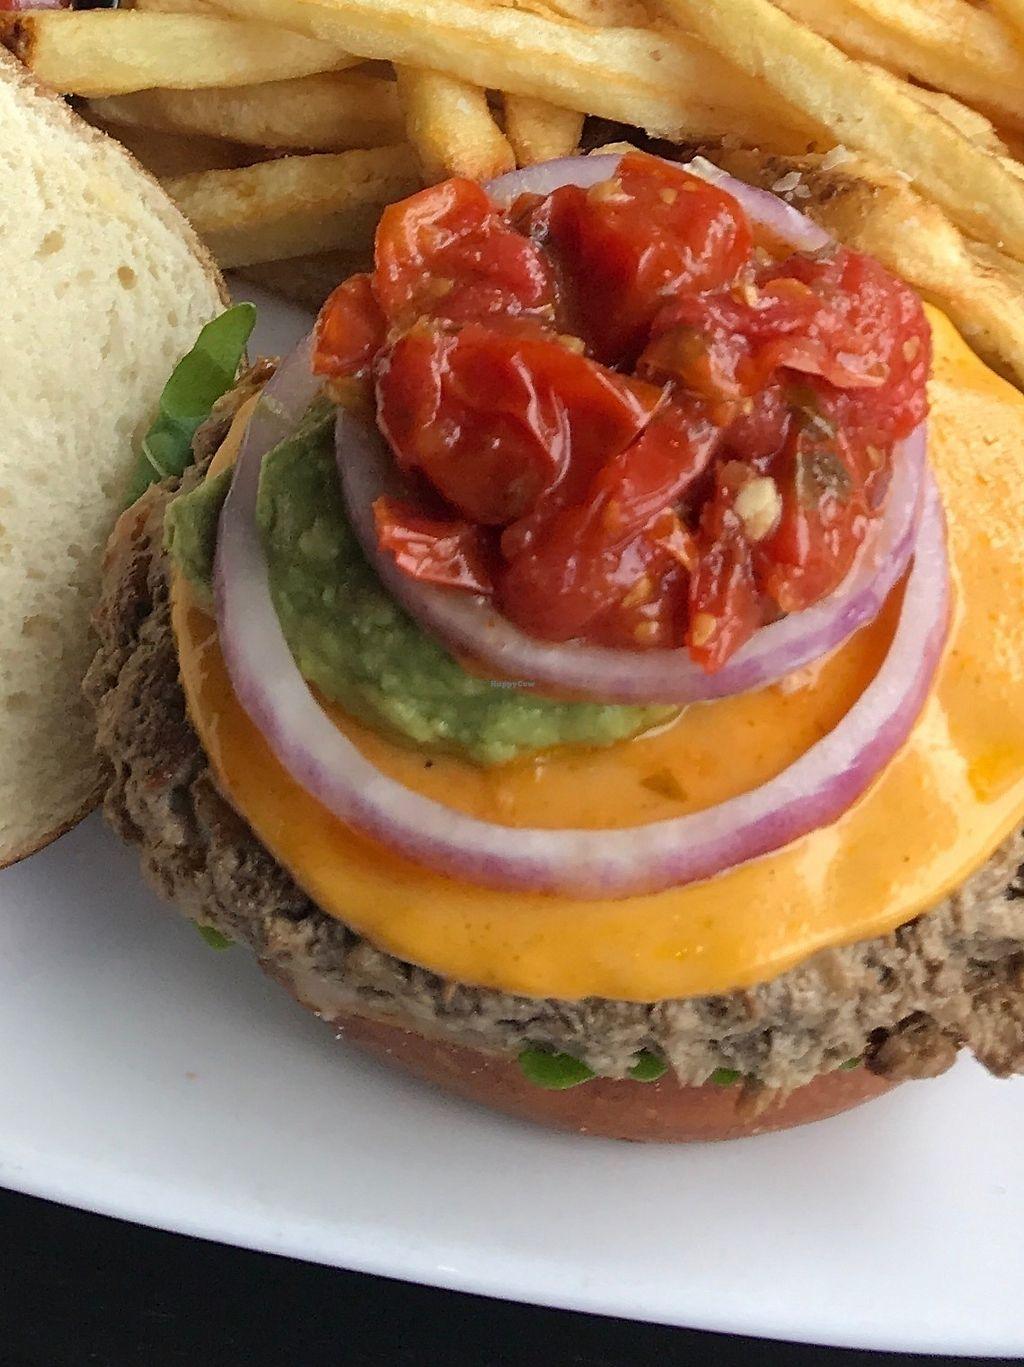 """Photo of Kuma's Corner  by <a href=""""/members/profile/Klrogers62"""">Klrogers62</a> <br/>Food was VERY good.  While visiting the Chicago area we found this place!  The burger pictured is called the Converge 6oz Impossible Burger, Cherry Tomato Jam, Avocado Mash, Cheddar (v), Roasted Garlic Mayo (v), Baby Arugula, Red Onion.  Fries are technically not vegan so my husband ate those.   <br/> December 9, 2017  - <a href='/contact/abuse/image/103445/334103'>Report</a>"""